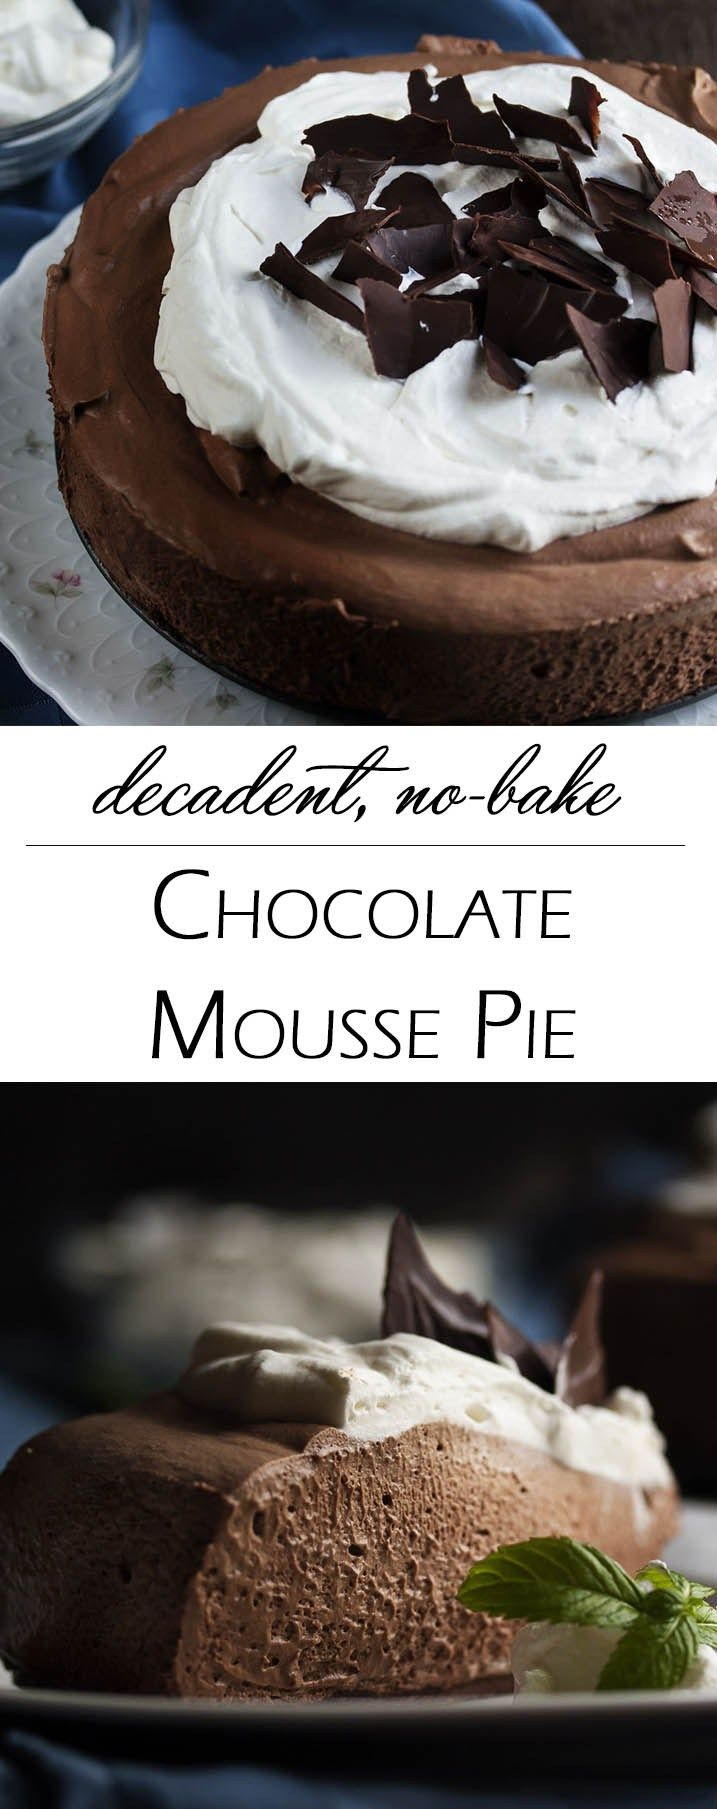 Dark Chocolate Mousse Pie - Dark chocolate whipped up into a creamy mousse layered over a crisp cookie crust and topped with mounds of whipped cream. Yum!   justalittlebitofbacon.com